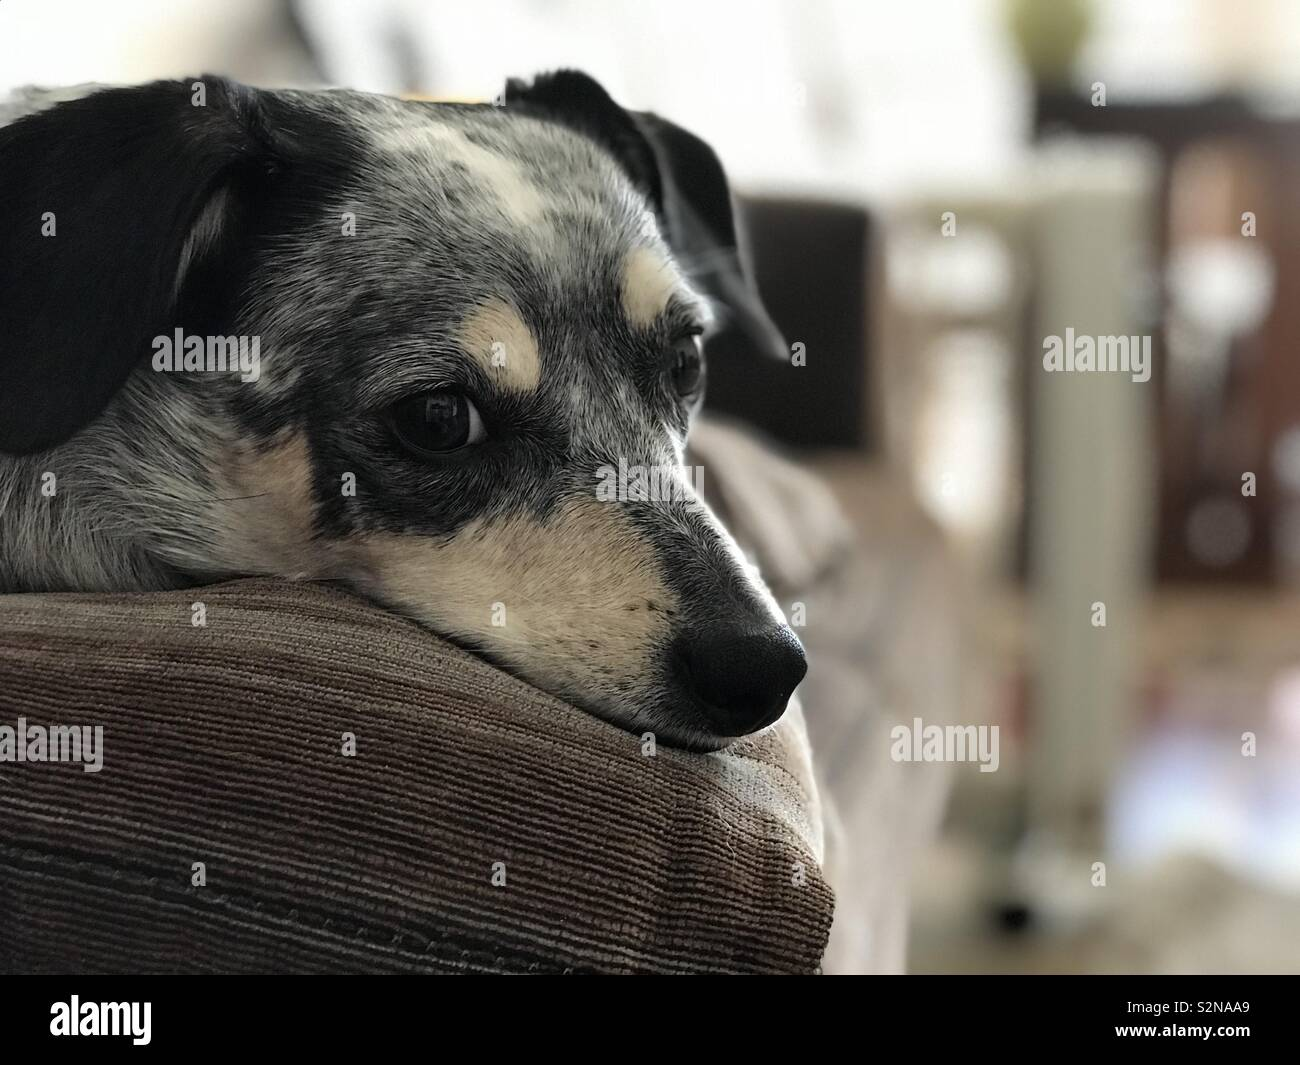 Dog laying in the couch - Stock Image